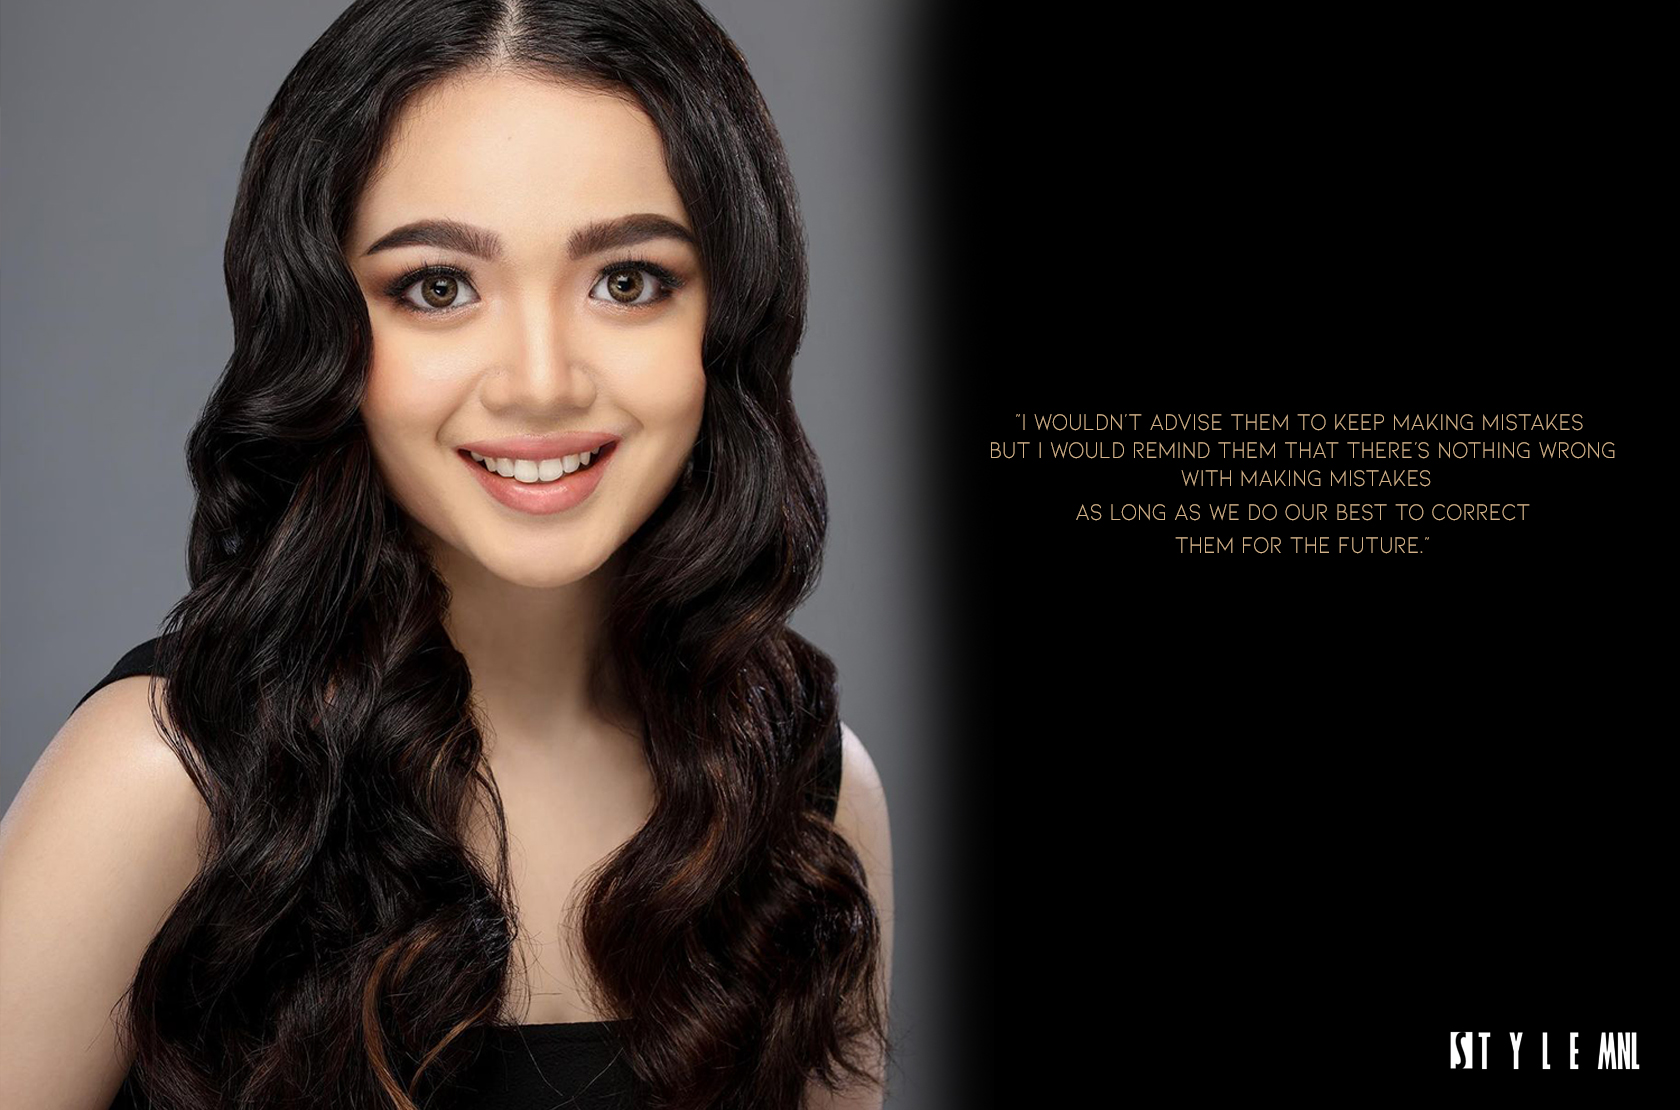 angela okol-7 OF THE BEST ANSWERS TO THE TRICKY QUESTION FROM MISS UNIVERSE PHILIPPINES 2021 PRELIMINARY INTERVIEWS